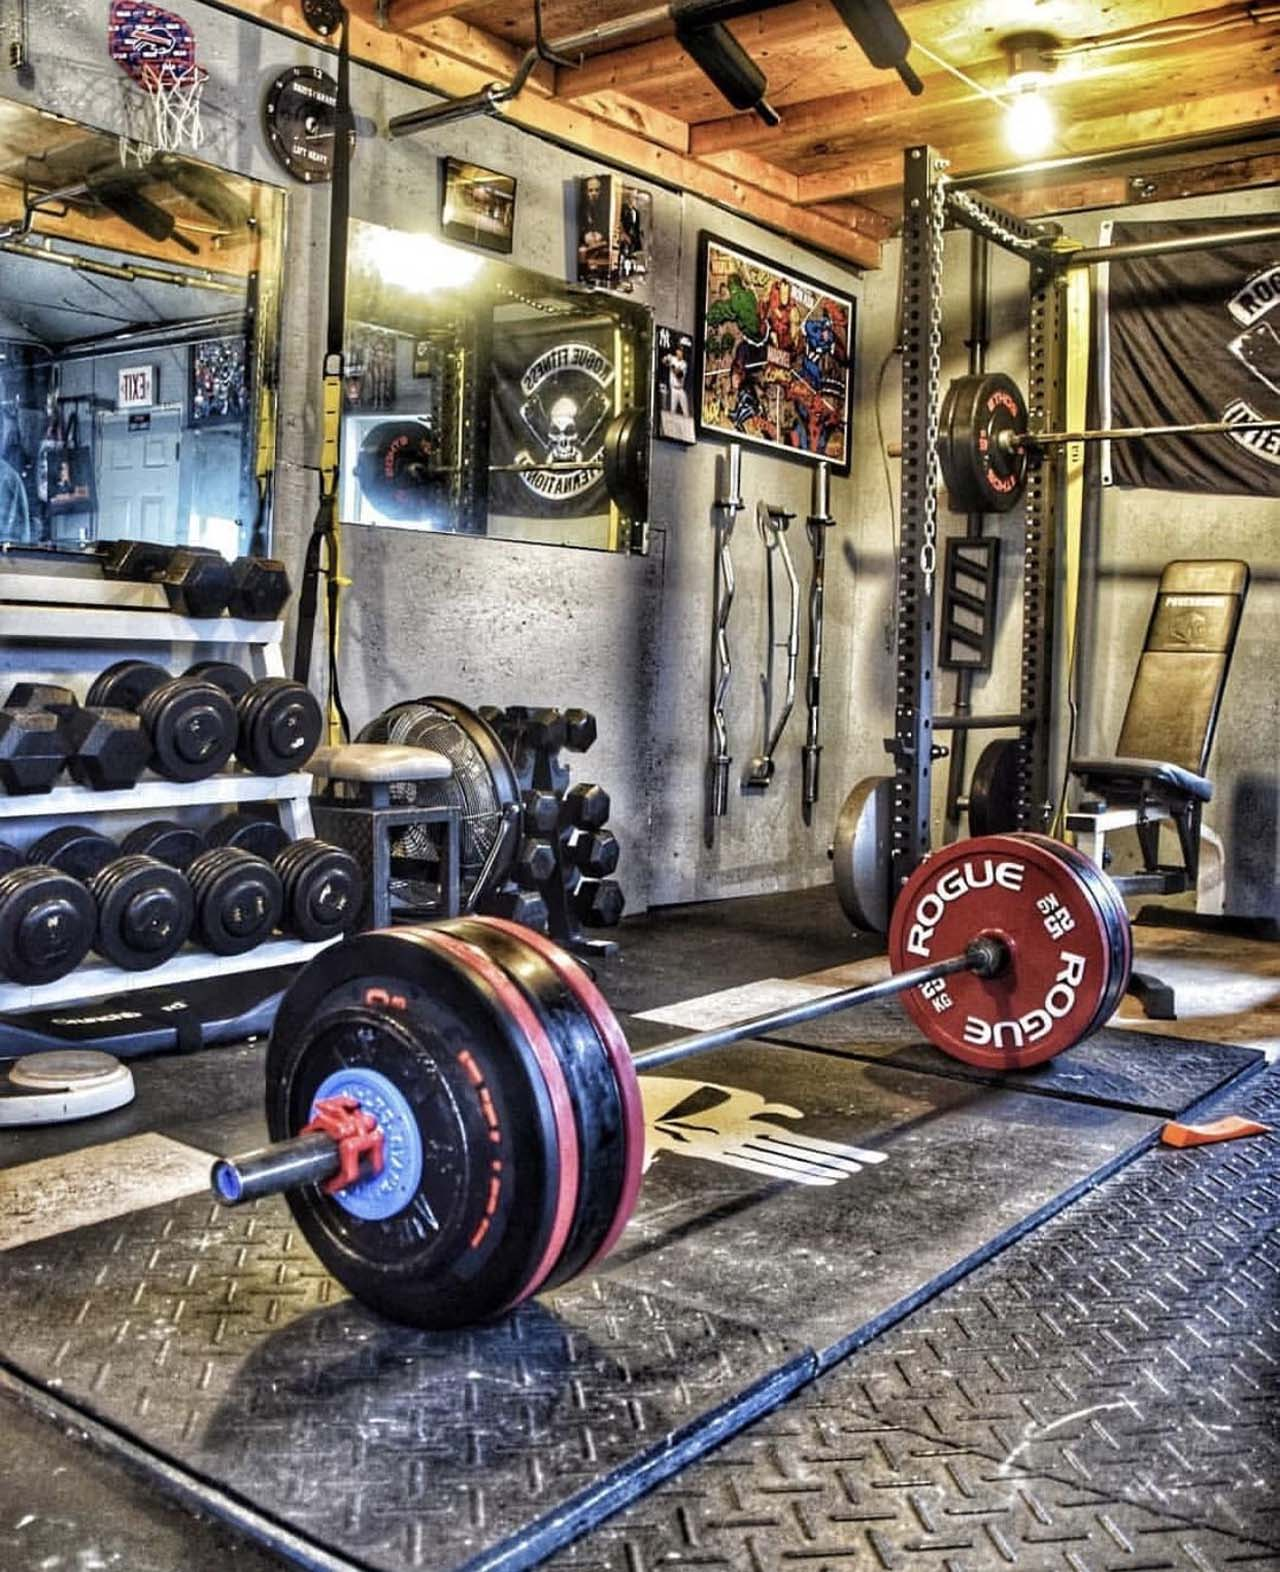 The Powerlifter Gym